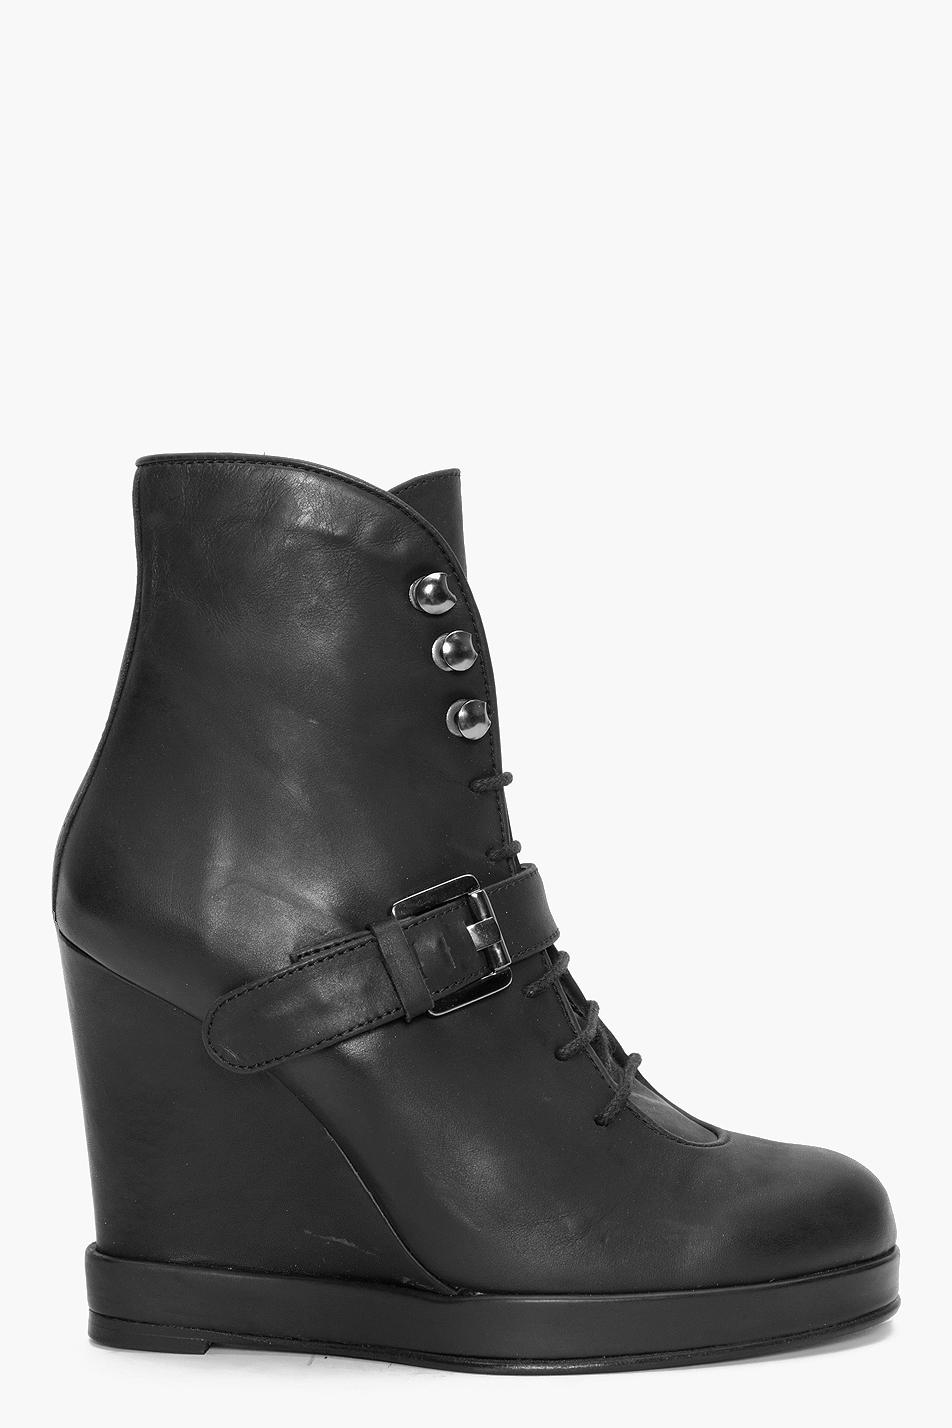 Surface To Air Buckle Ankle Boots In Black Lyst